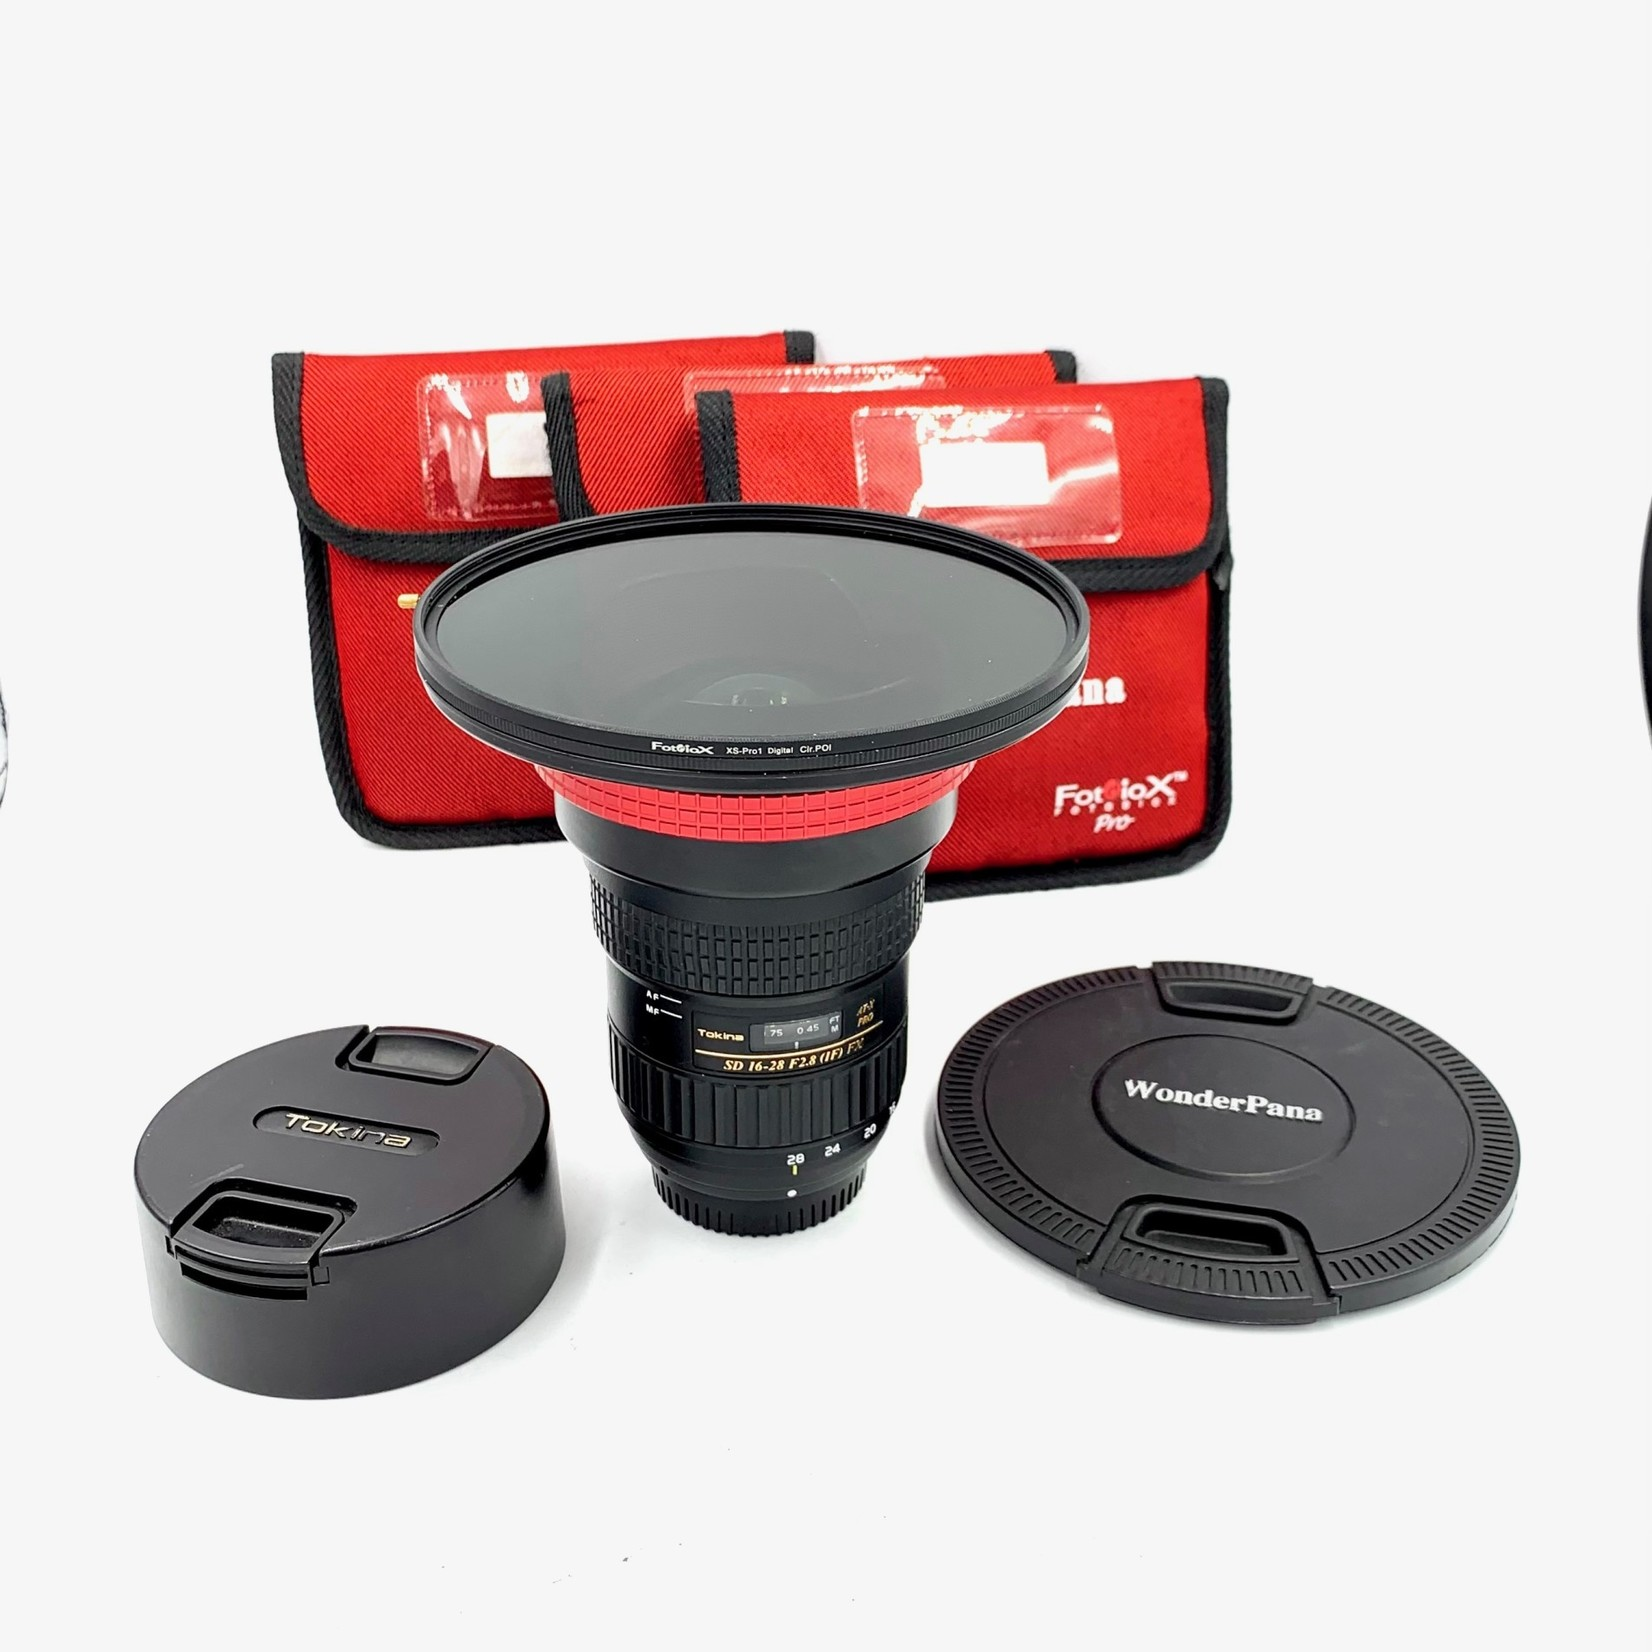 Tokina USED Tokina 16-28 f/2.8 AT-X  PRO FX Lens for Nikon (W/Box) and Fotodiox WonderPano CPL Filter System